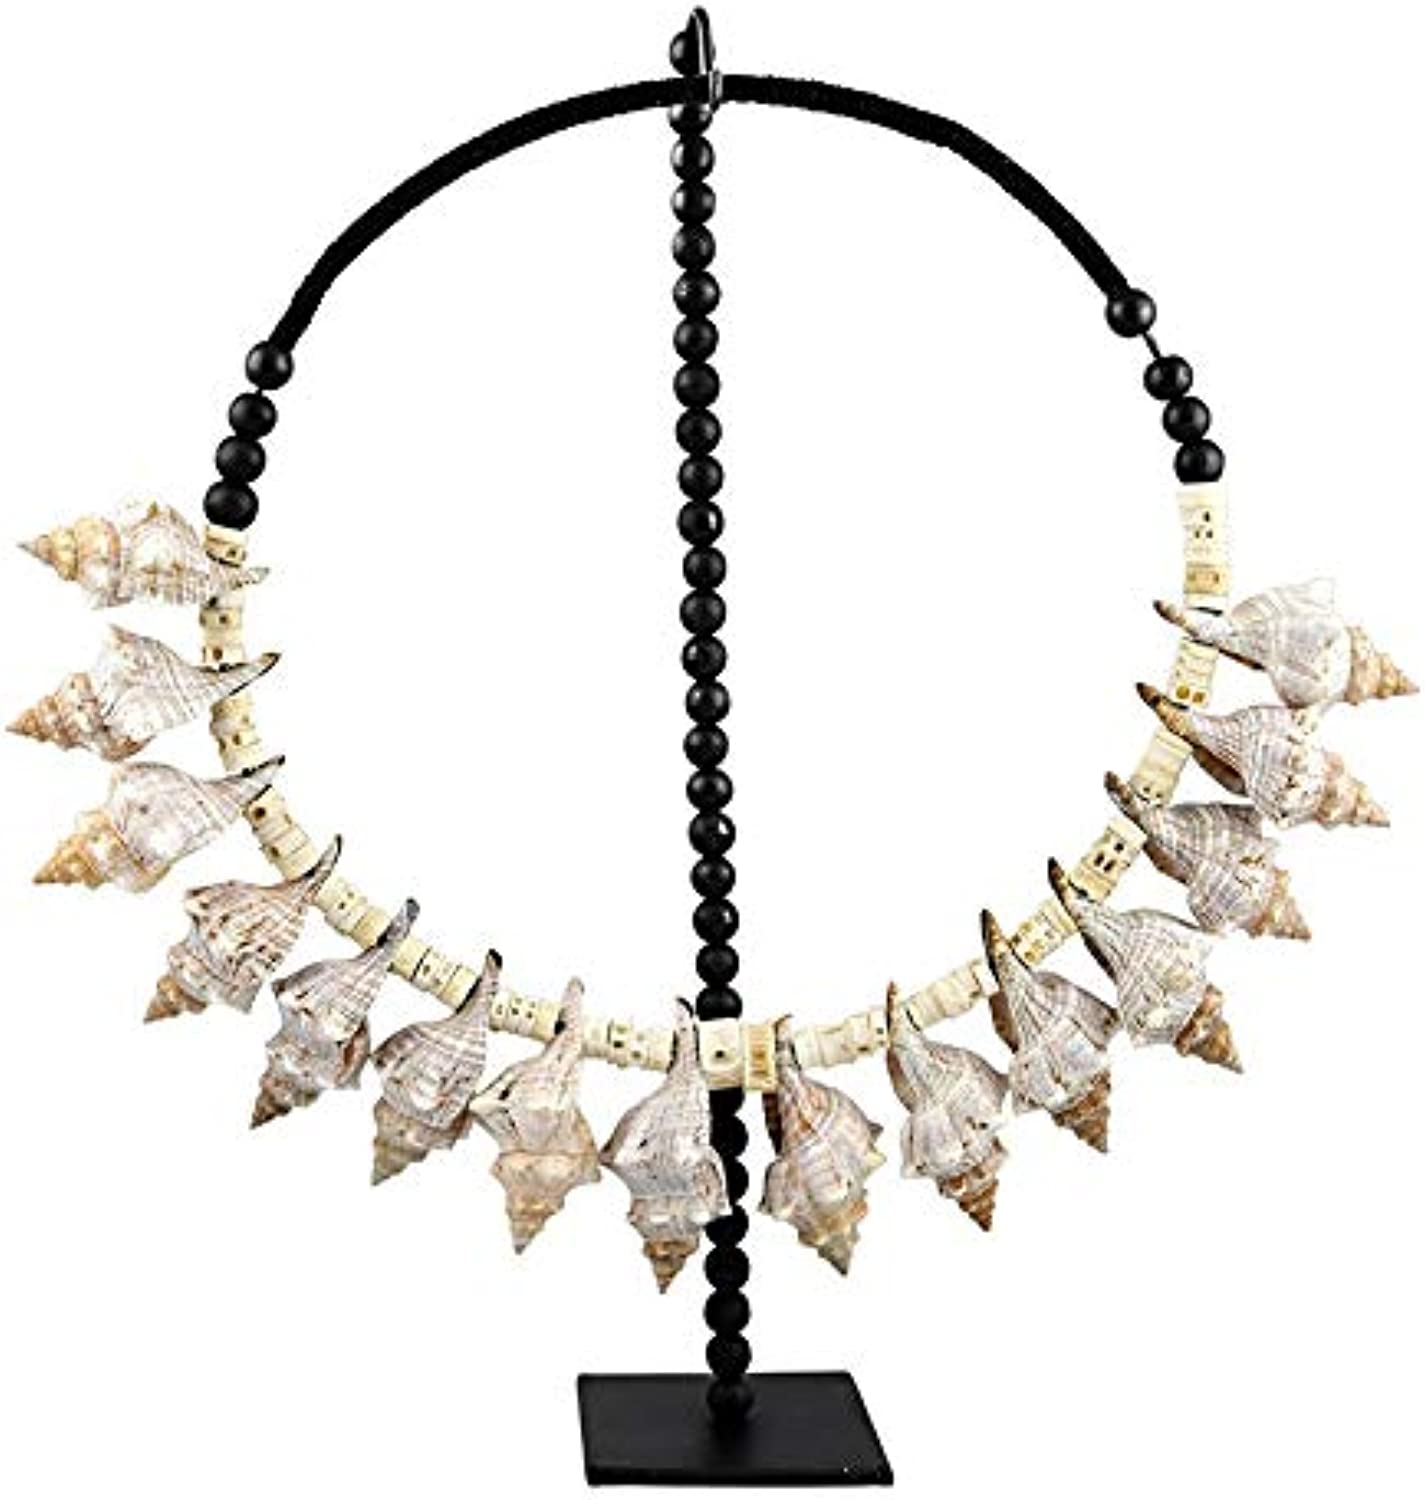 Large Necklace ON Stand Hand Craft Neck Piece Shell Beads Multi 65X55CM